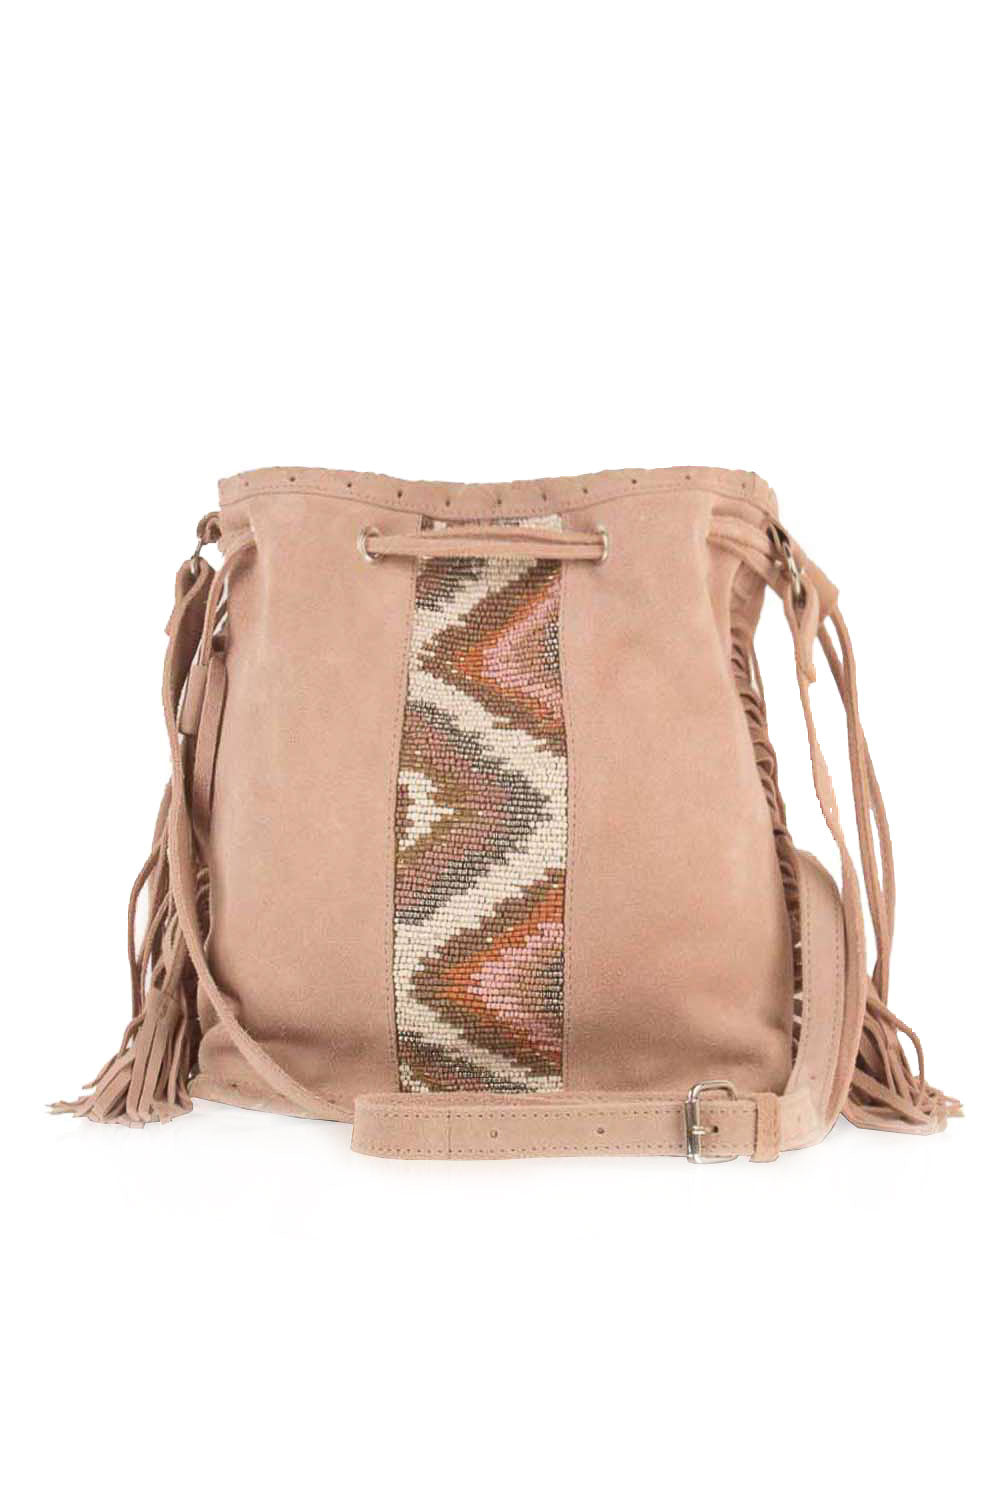 TUSA SUEDE BEADED FRINGE SATCHEL